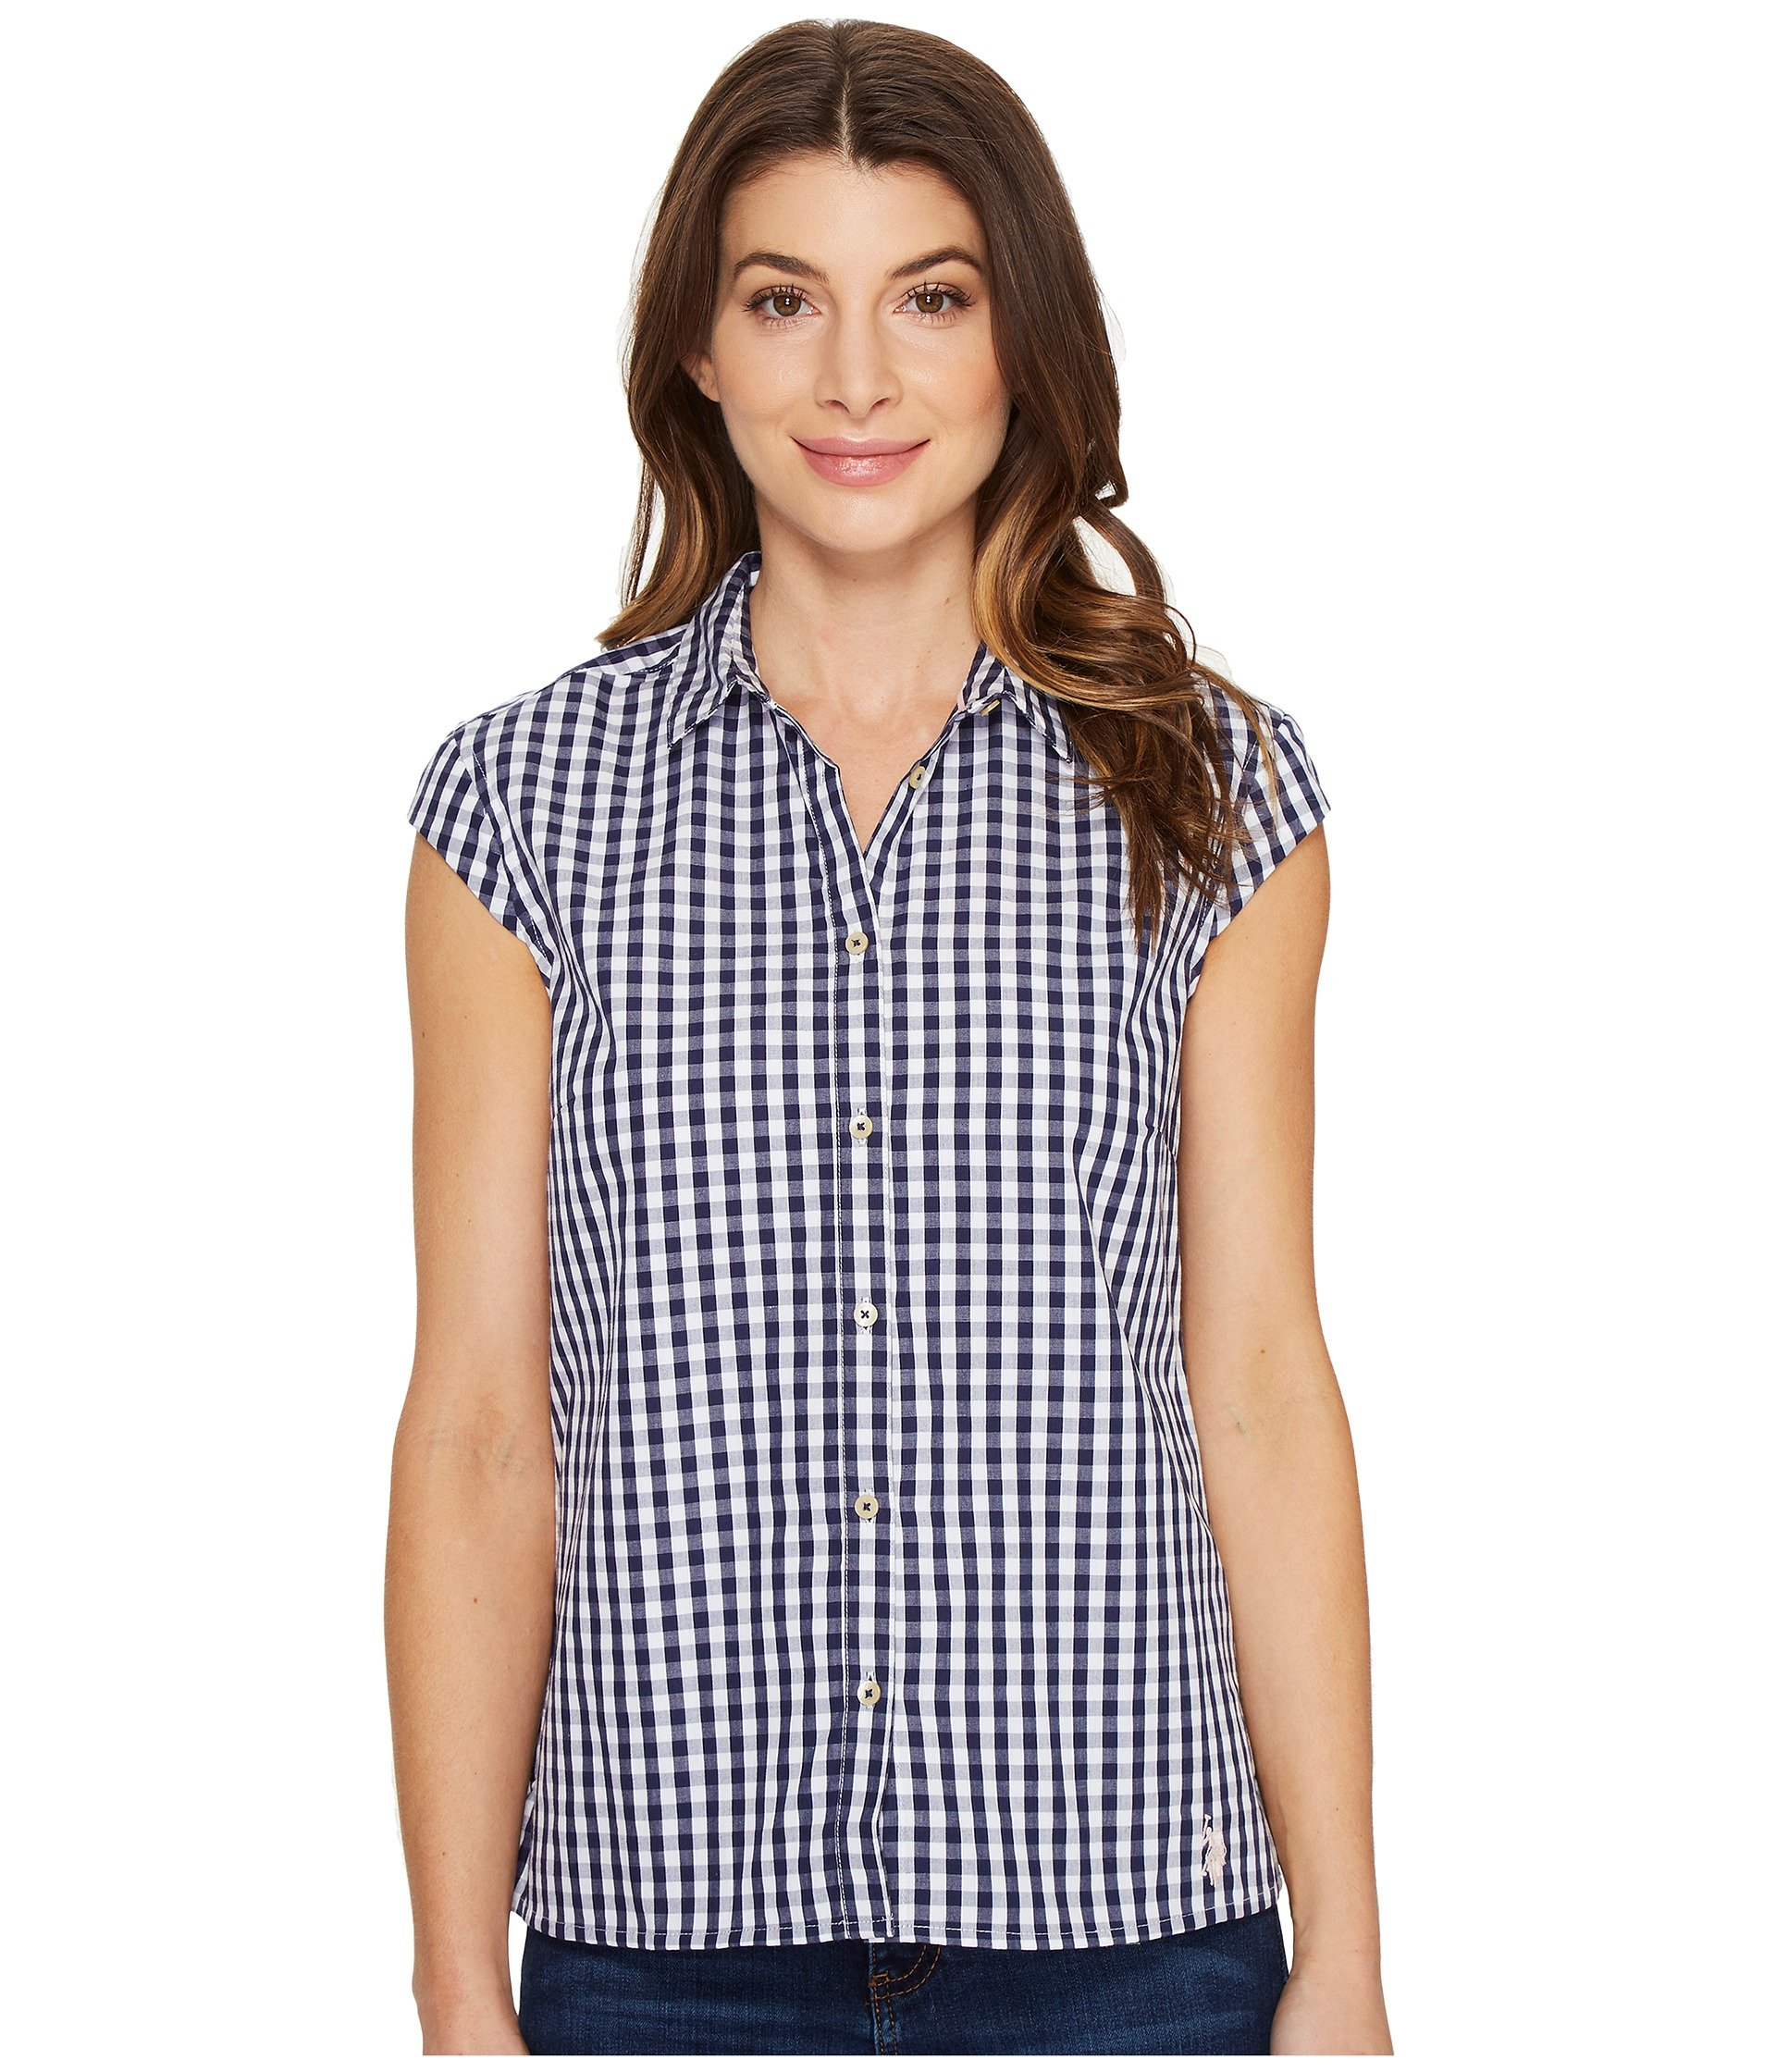 Blusa para Mujer U.S. POLO ASSN. Classic Short Sleeve Gingham Blouse  + U.S. POLO ASSN. en VeoyCompro.net